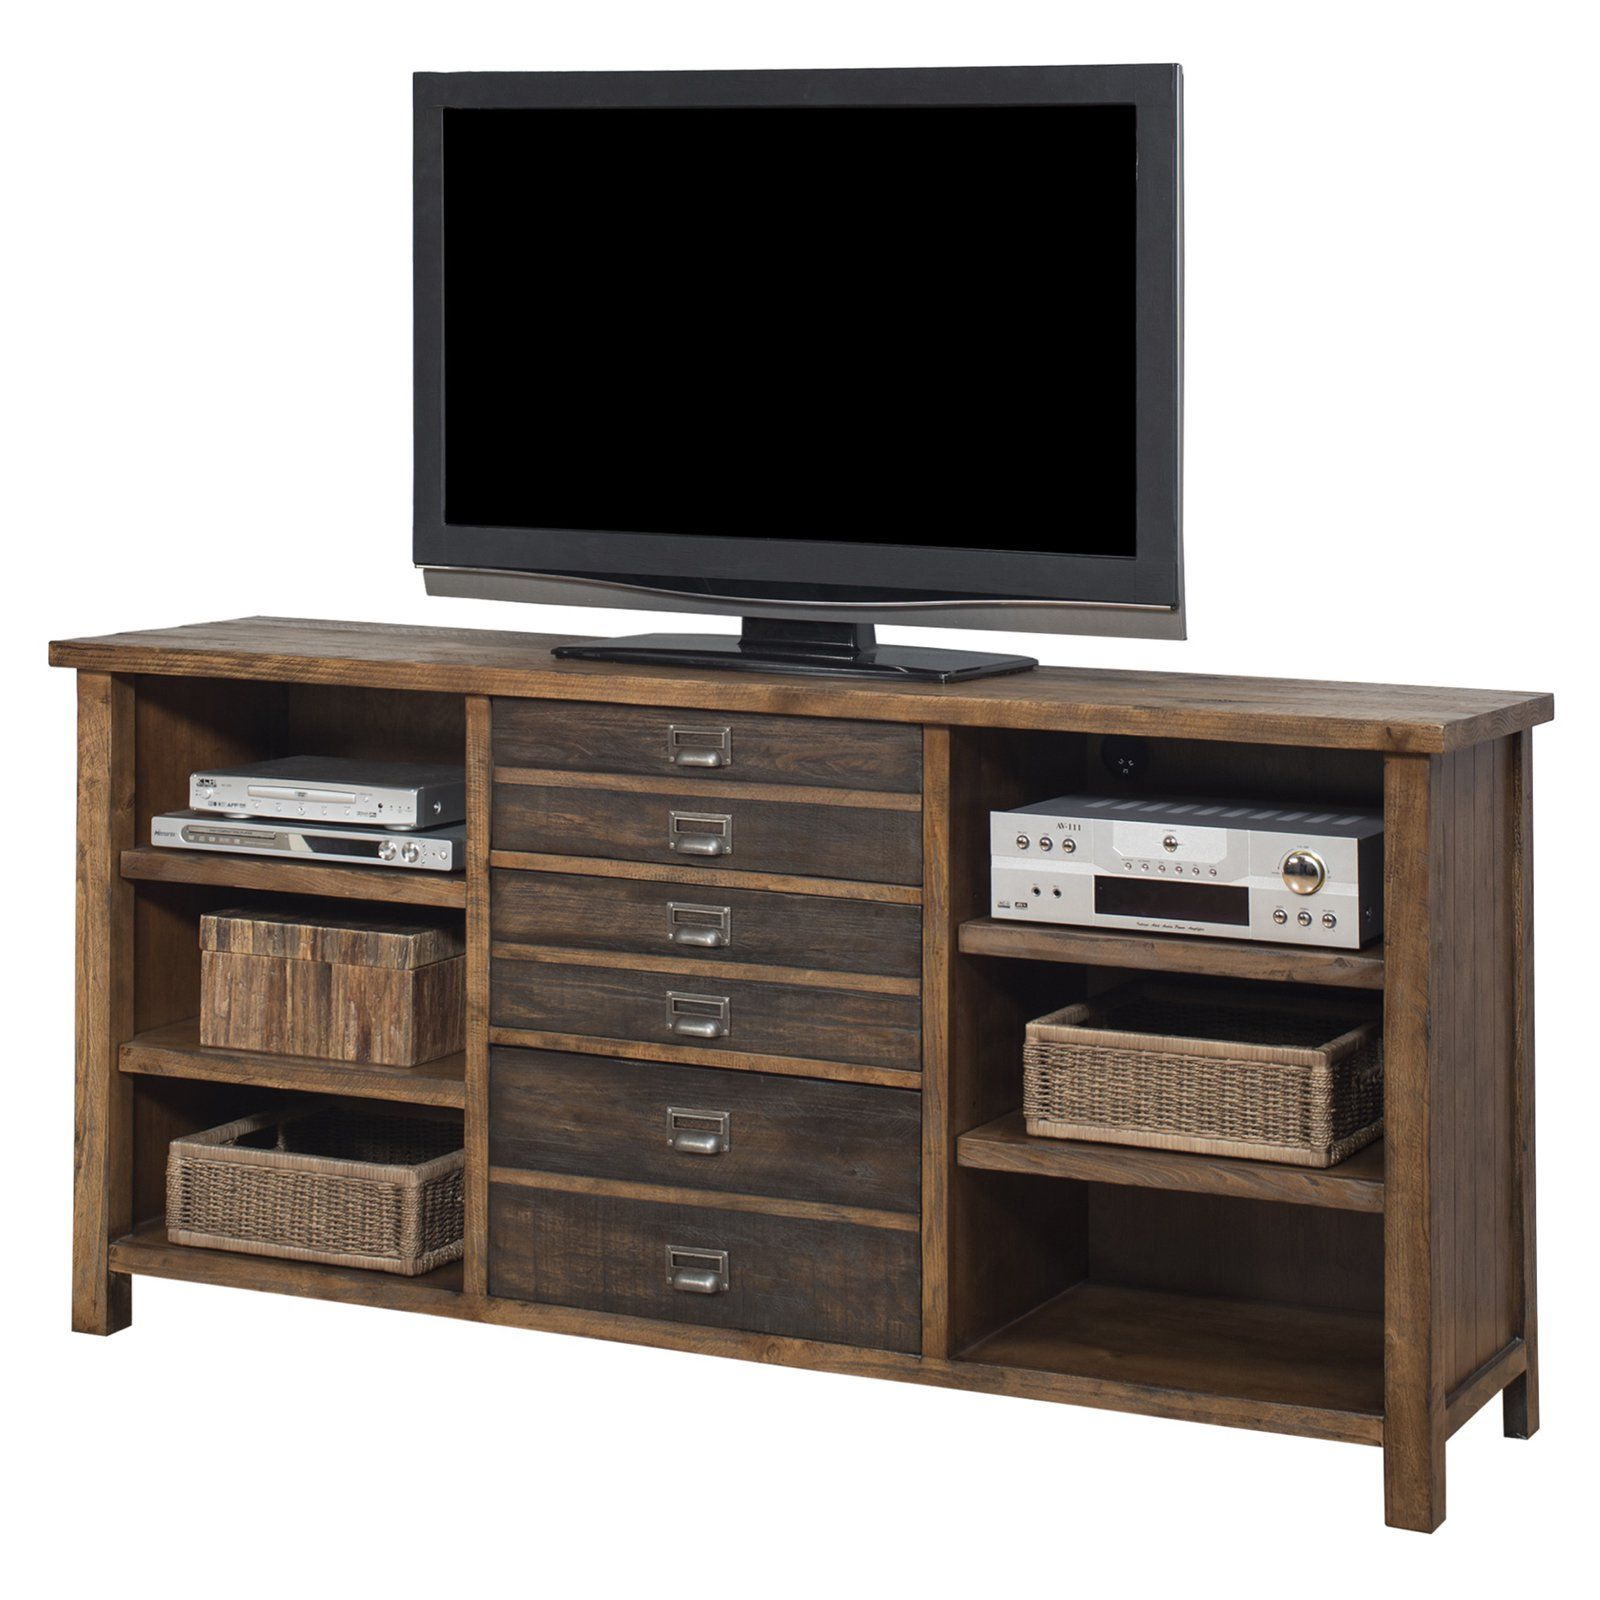 Martin Furniture Heritage Credenza TV Stand | From Hayneedle.com